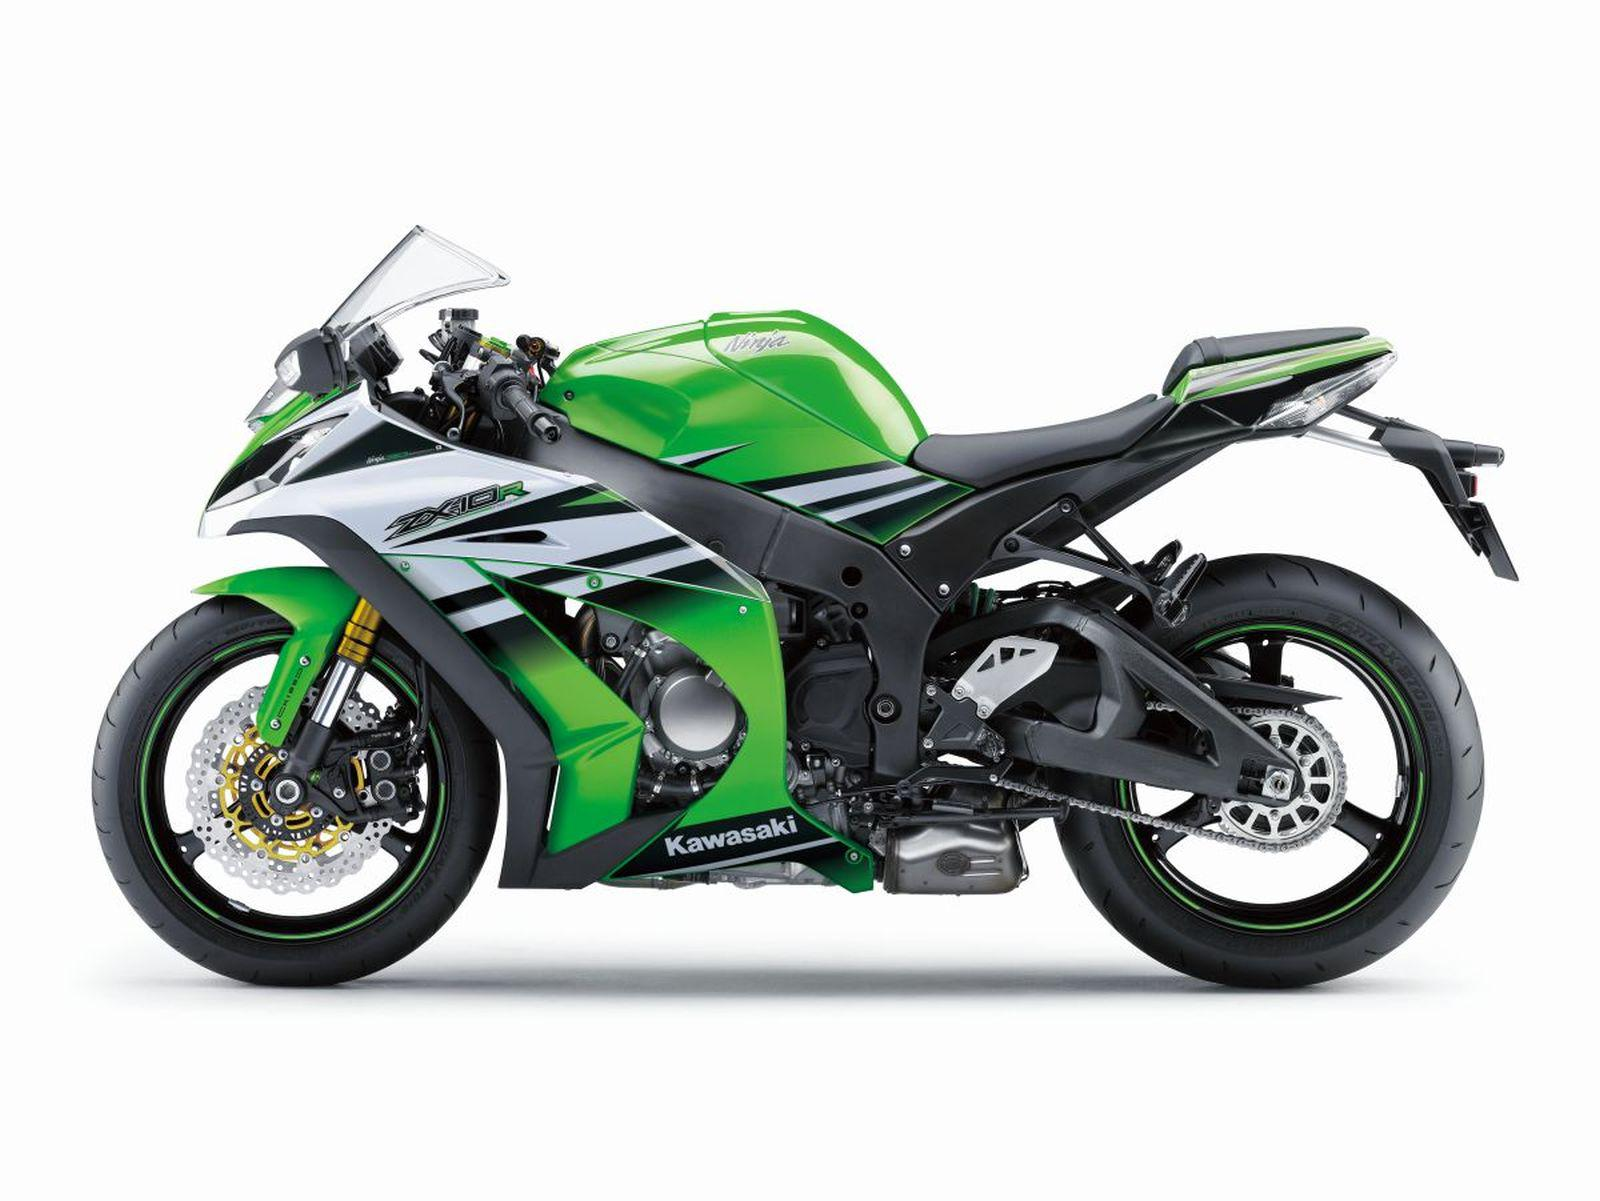 30 jahre kawasaki ninja editionen motorrad fotos motorrad bilder. Black Bedroom Furniture Sets. Home Design Ideas